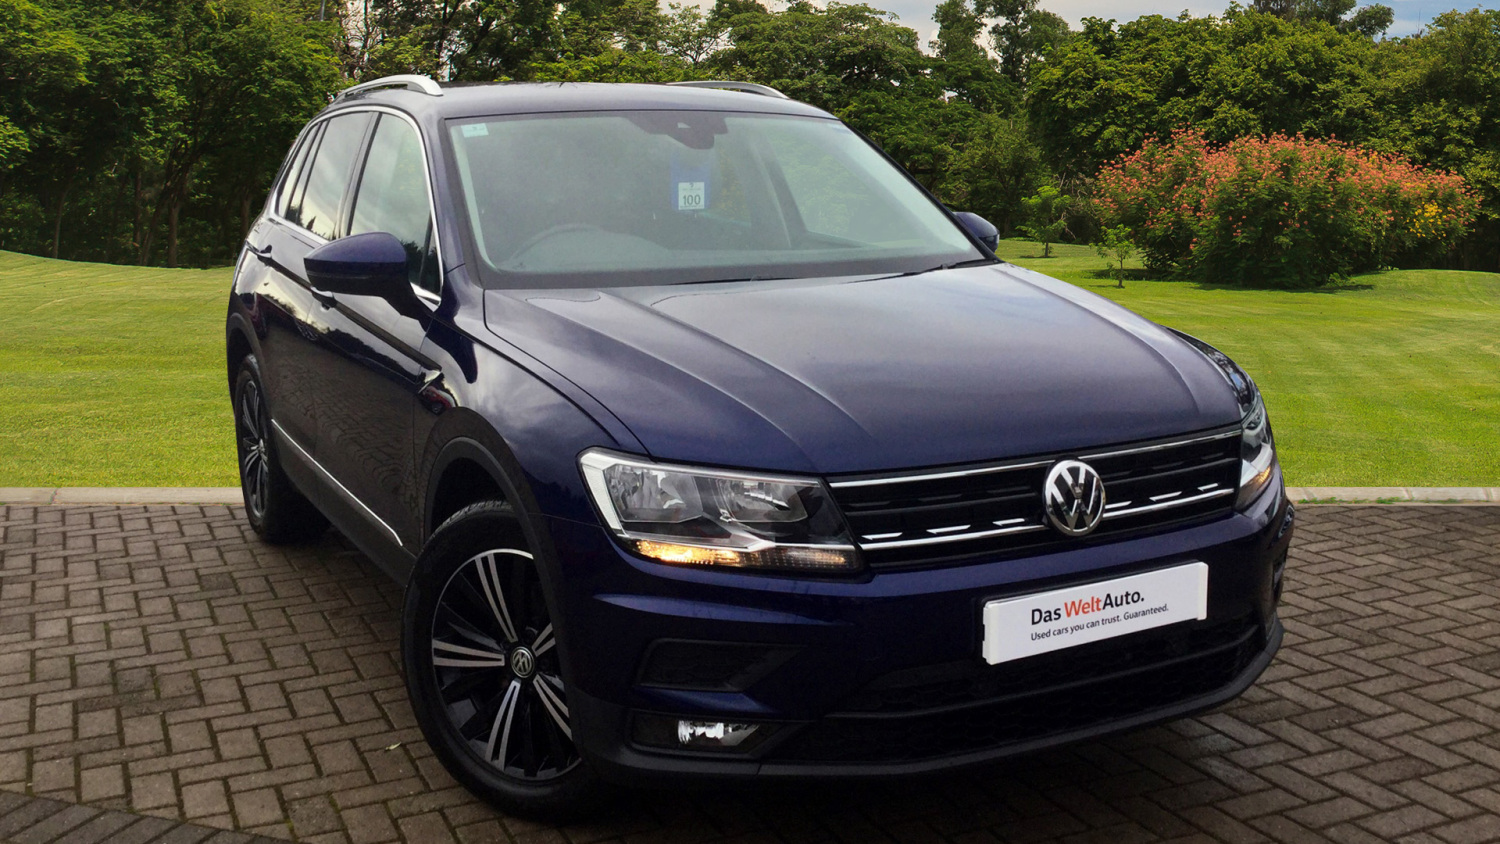 used volkswagen tiguan 2 0 tdi bmt 150 se 5dr diesel. Black Bedroom Furniture Sets. Home Design Ideas